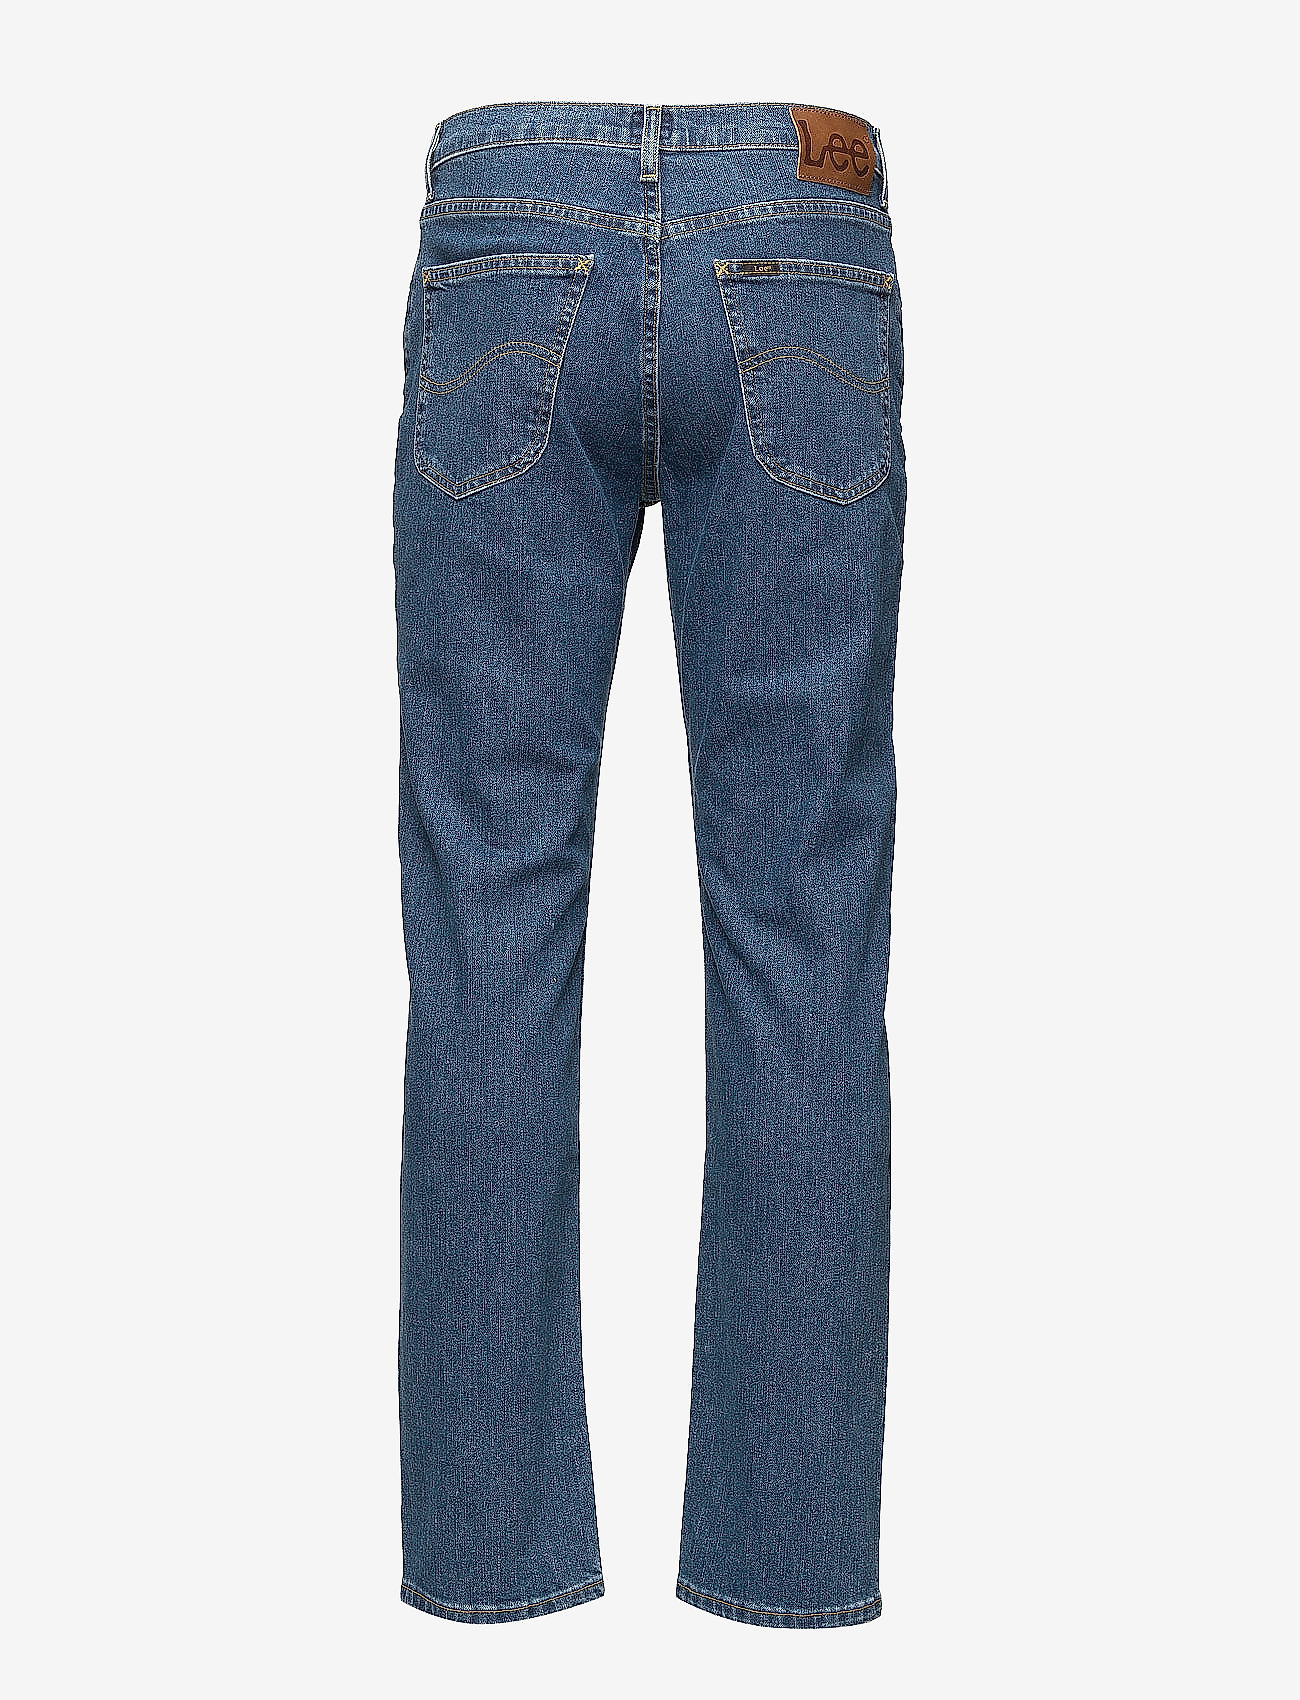 Lee Jeans - BROOKLYN STRAIGHT - relaxed jeans - mid stonewash - 1